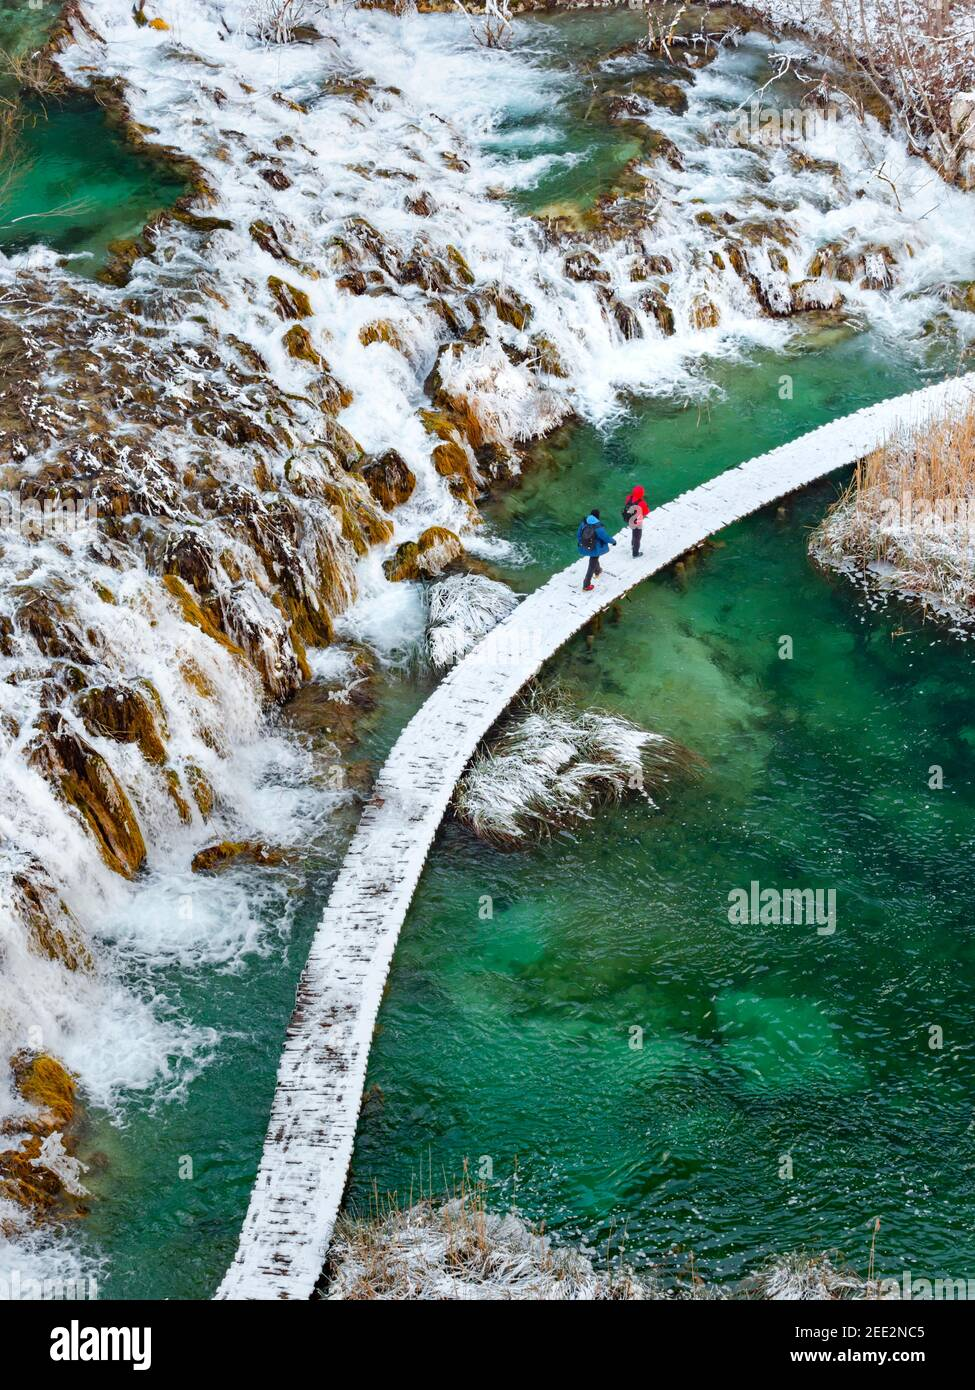 Two visitors human person persons people inational park Plitvice lakes Croatia Europe Winter under covered cover snow ice waterflow water flowing flow Stock Photo